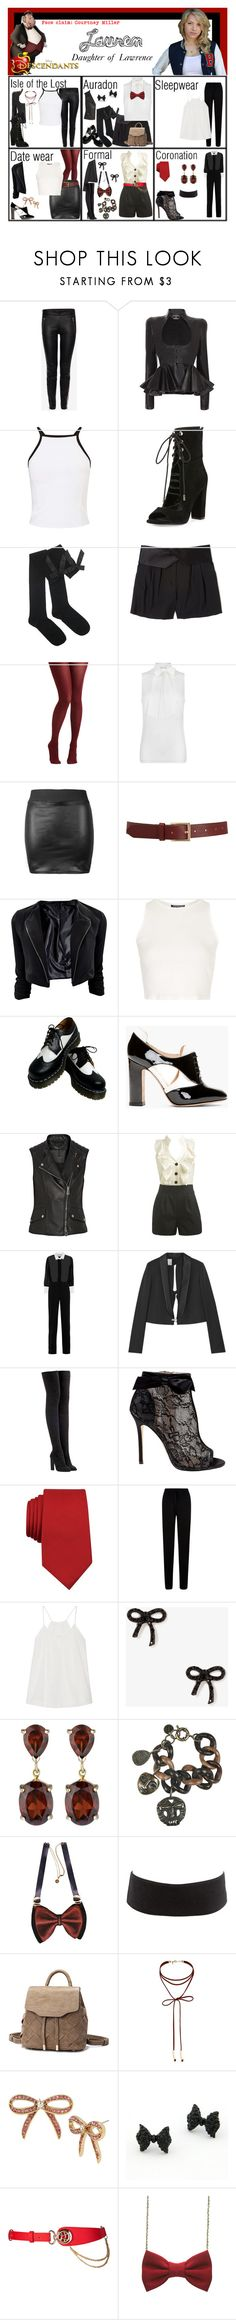 """Lauren. Daughter of Lawrence (Princess and The Frog)"" by elmoakepoke ❤ liked on Polyvore featuring Alexander McQueen, Miss Selfridge, Kendall + Kylie, DKNY, tabbisocks, MICHAEL Michael Kors, Barneys New York, Topshop, Dr. Martens and Valentino"